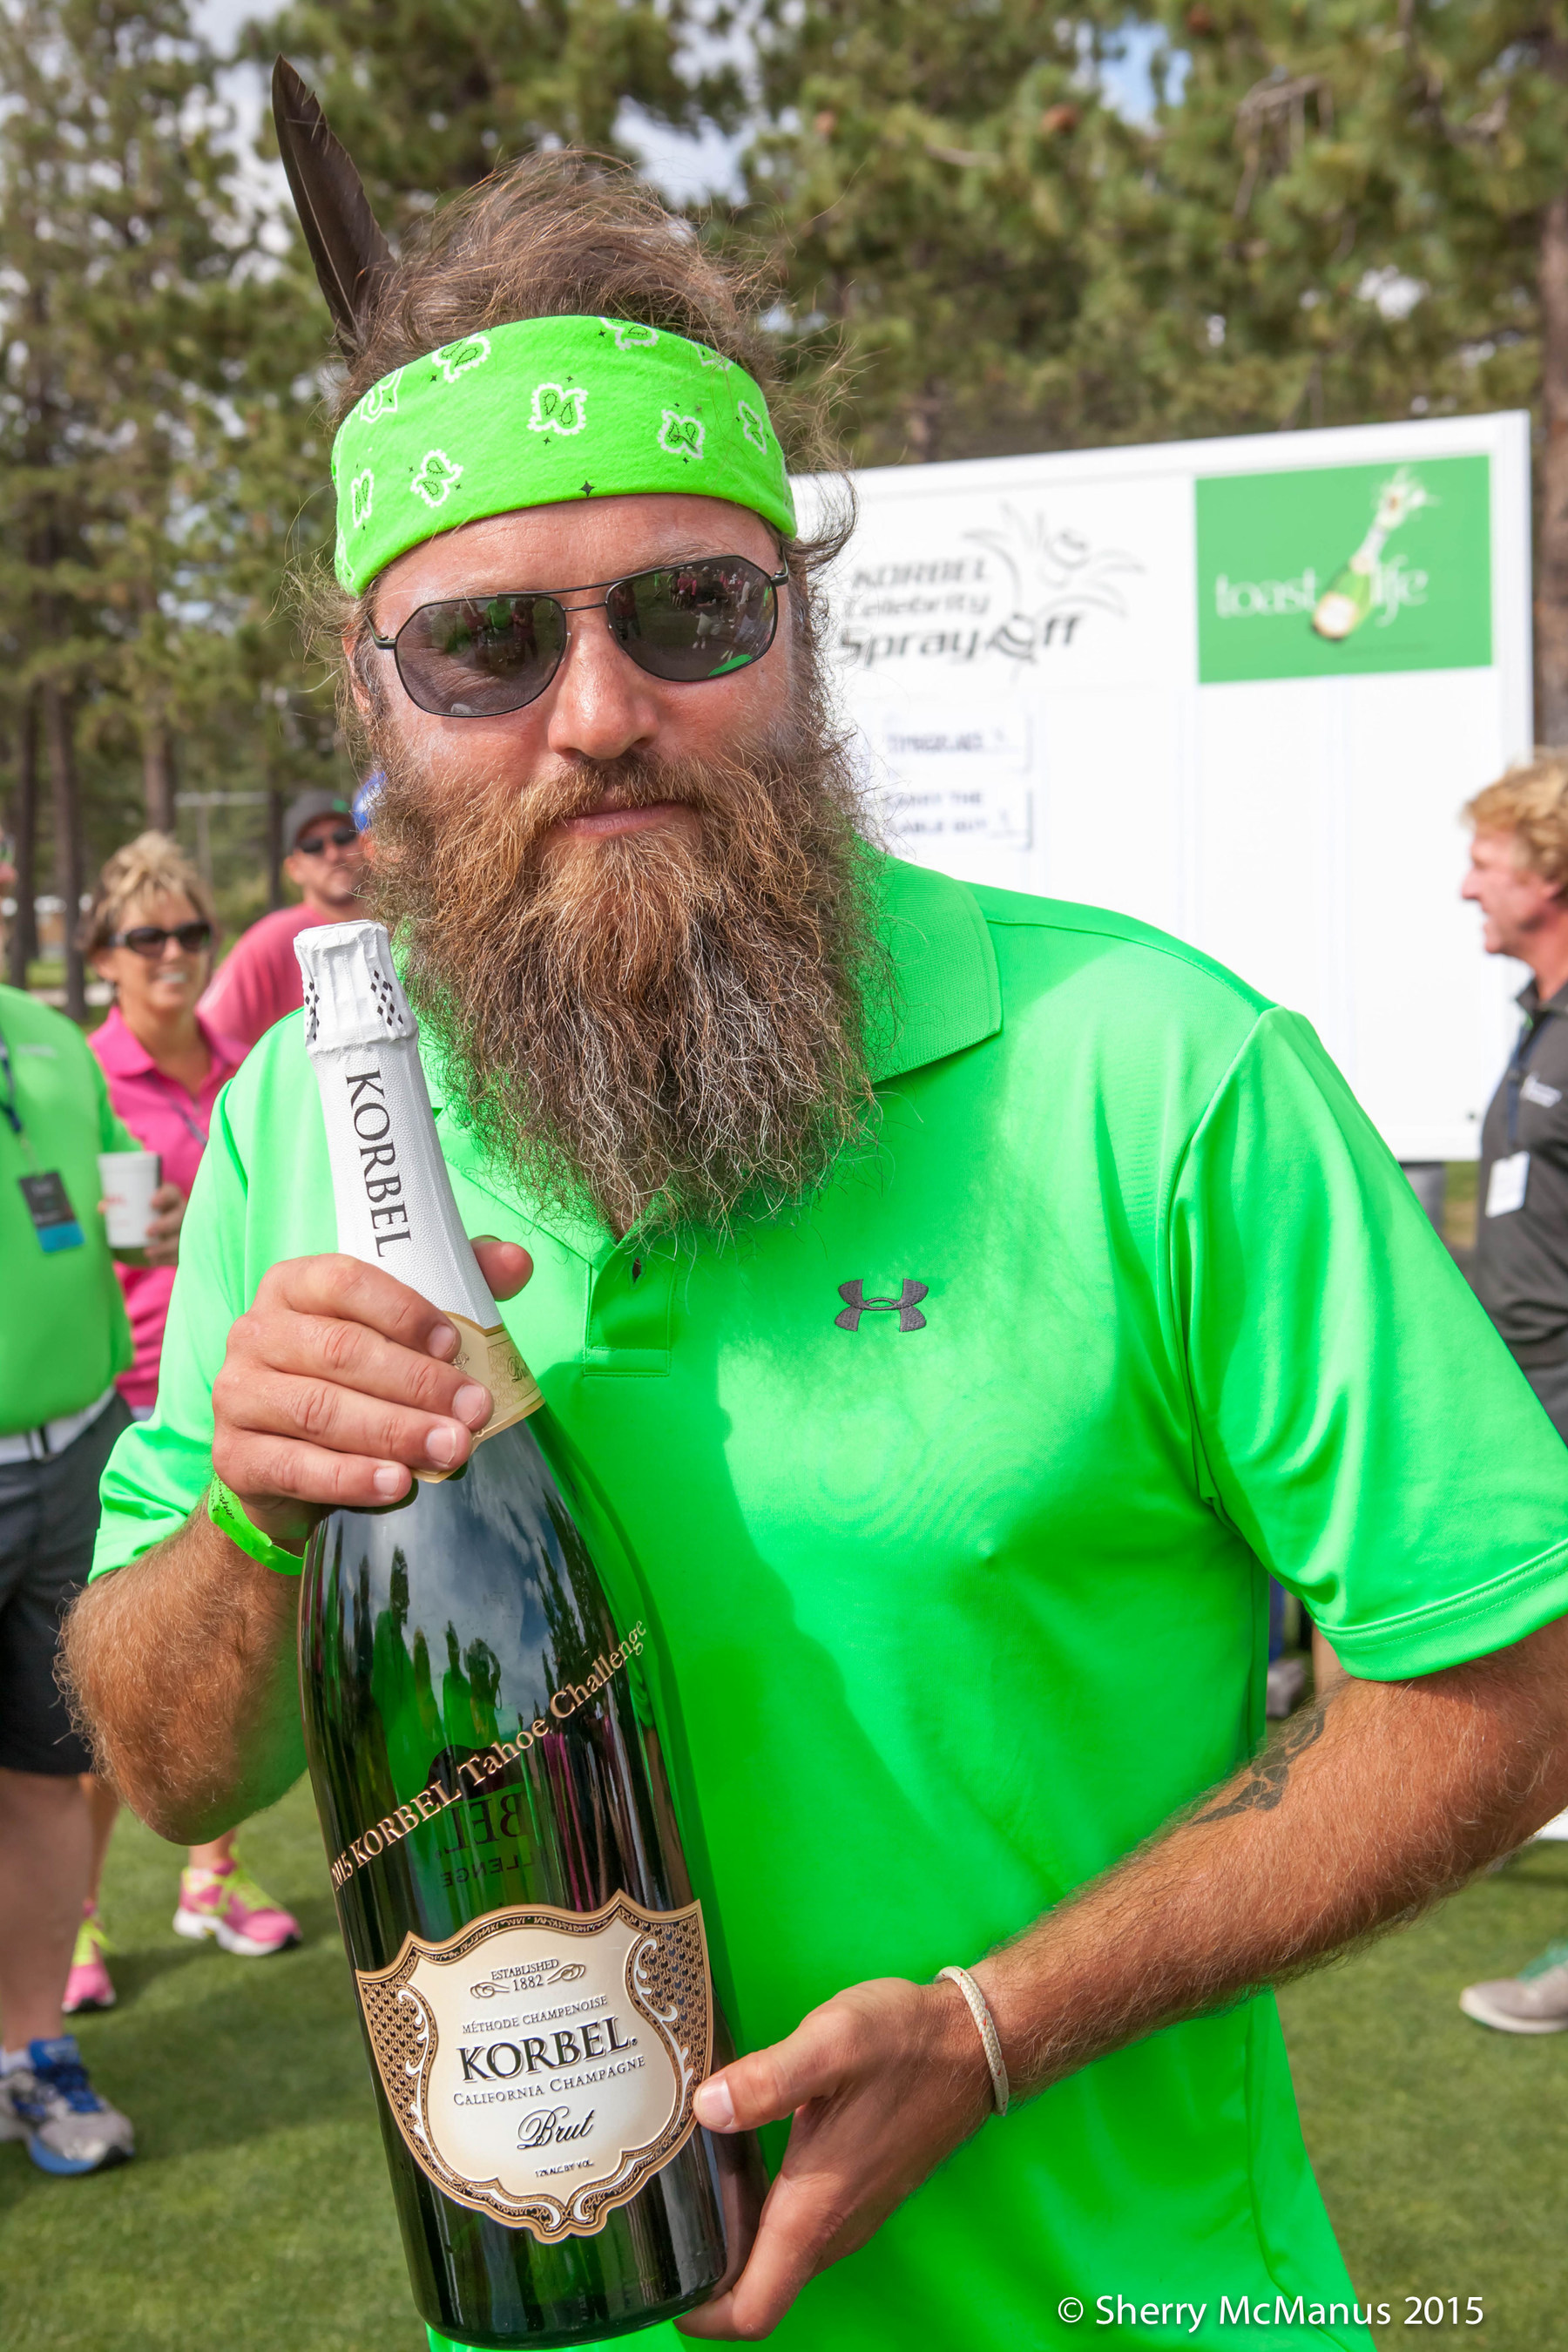 On July 17th 13 of the world's most legendary athletes and entertainers competed in Lake Tahoe for the Korbel Closest-to-the-Pin Challenge as part of the American Century Celebrity Golf Championship, currently being played at Edgewood Golf Course. Duck Dynasty Star Willie Robertson took home the title after teeing off from Hole 17 and placing his ball just 12 feet 1 inch away from the pin, winning a $5,000 donation for Tahoe Wildlife Care from the Korbel Toast Life Foundation.